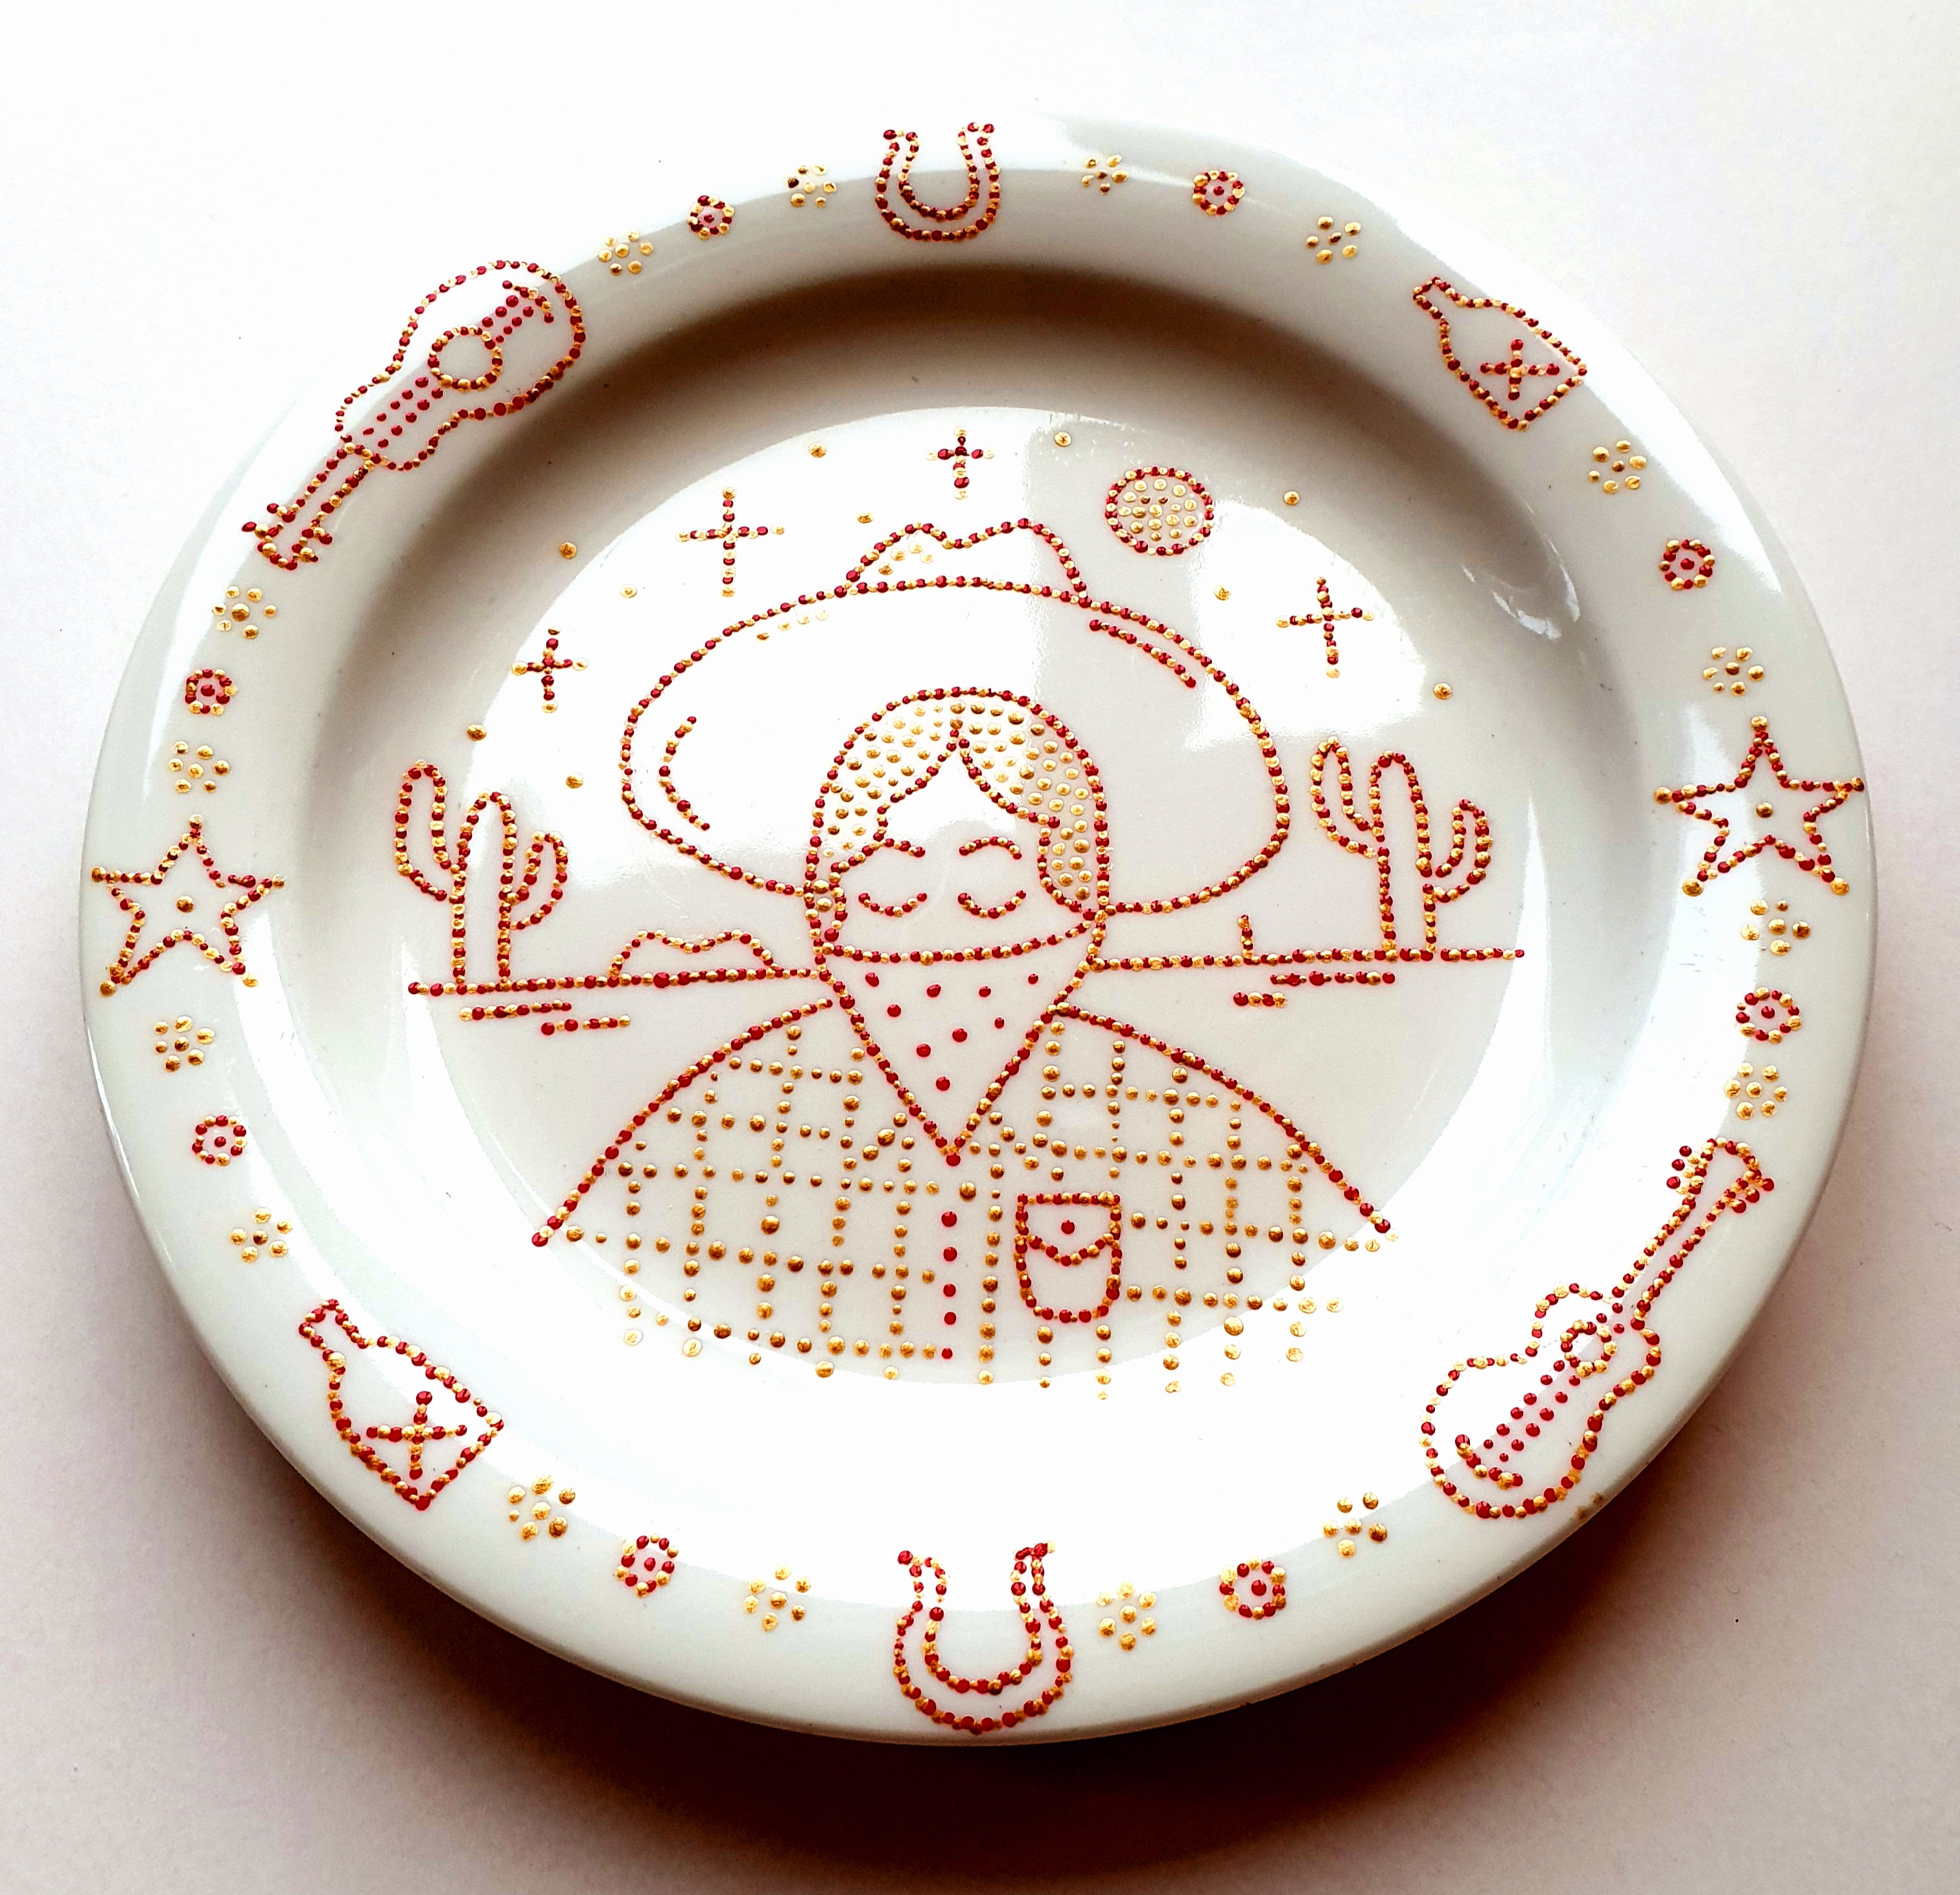 Cowgirl plate